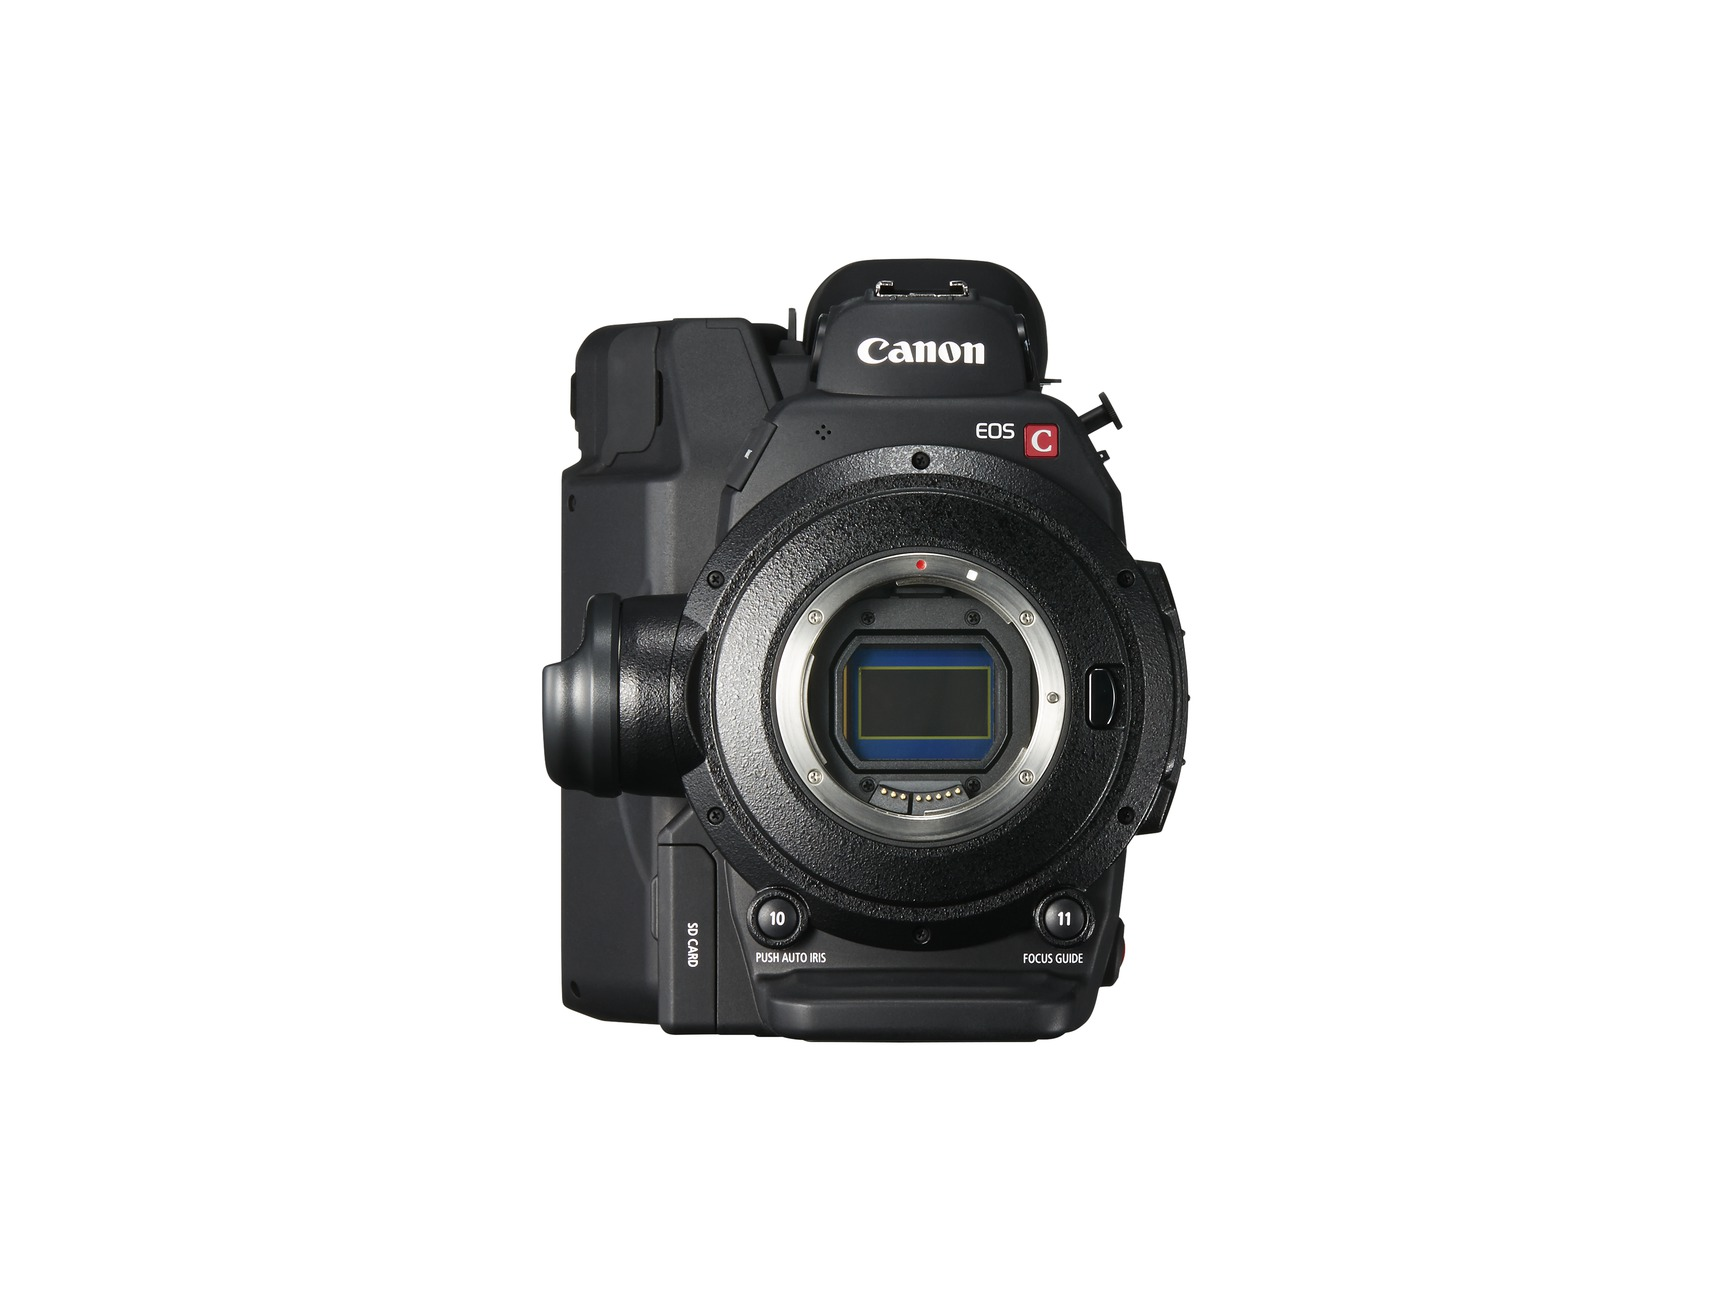 New Canon EOS C300 Mark II sensor